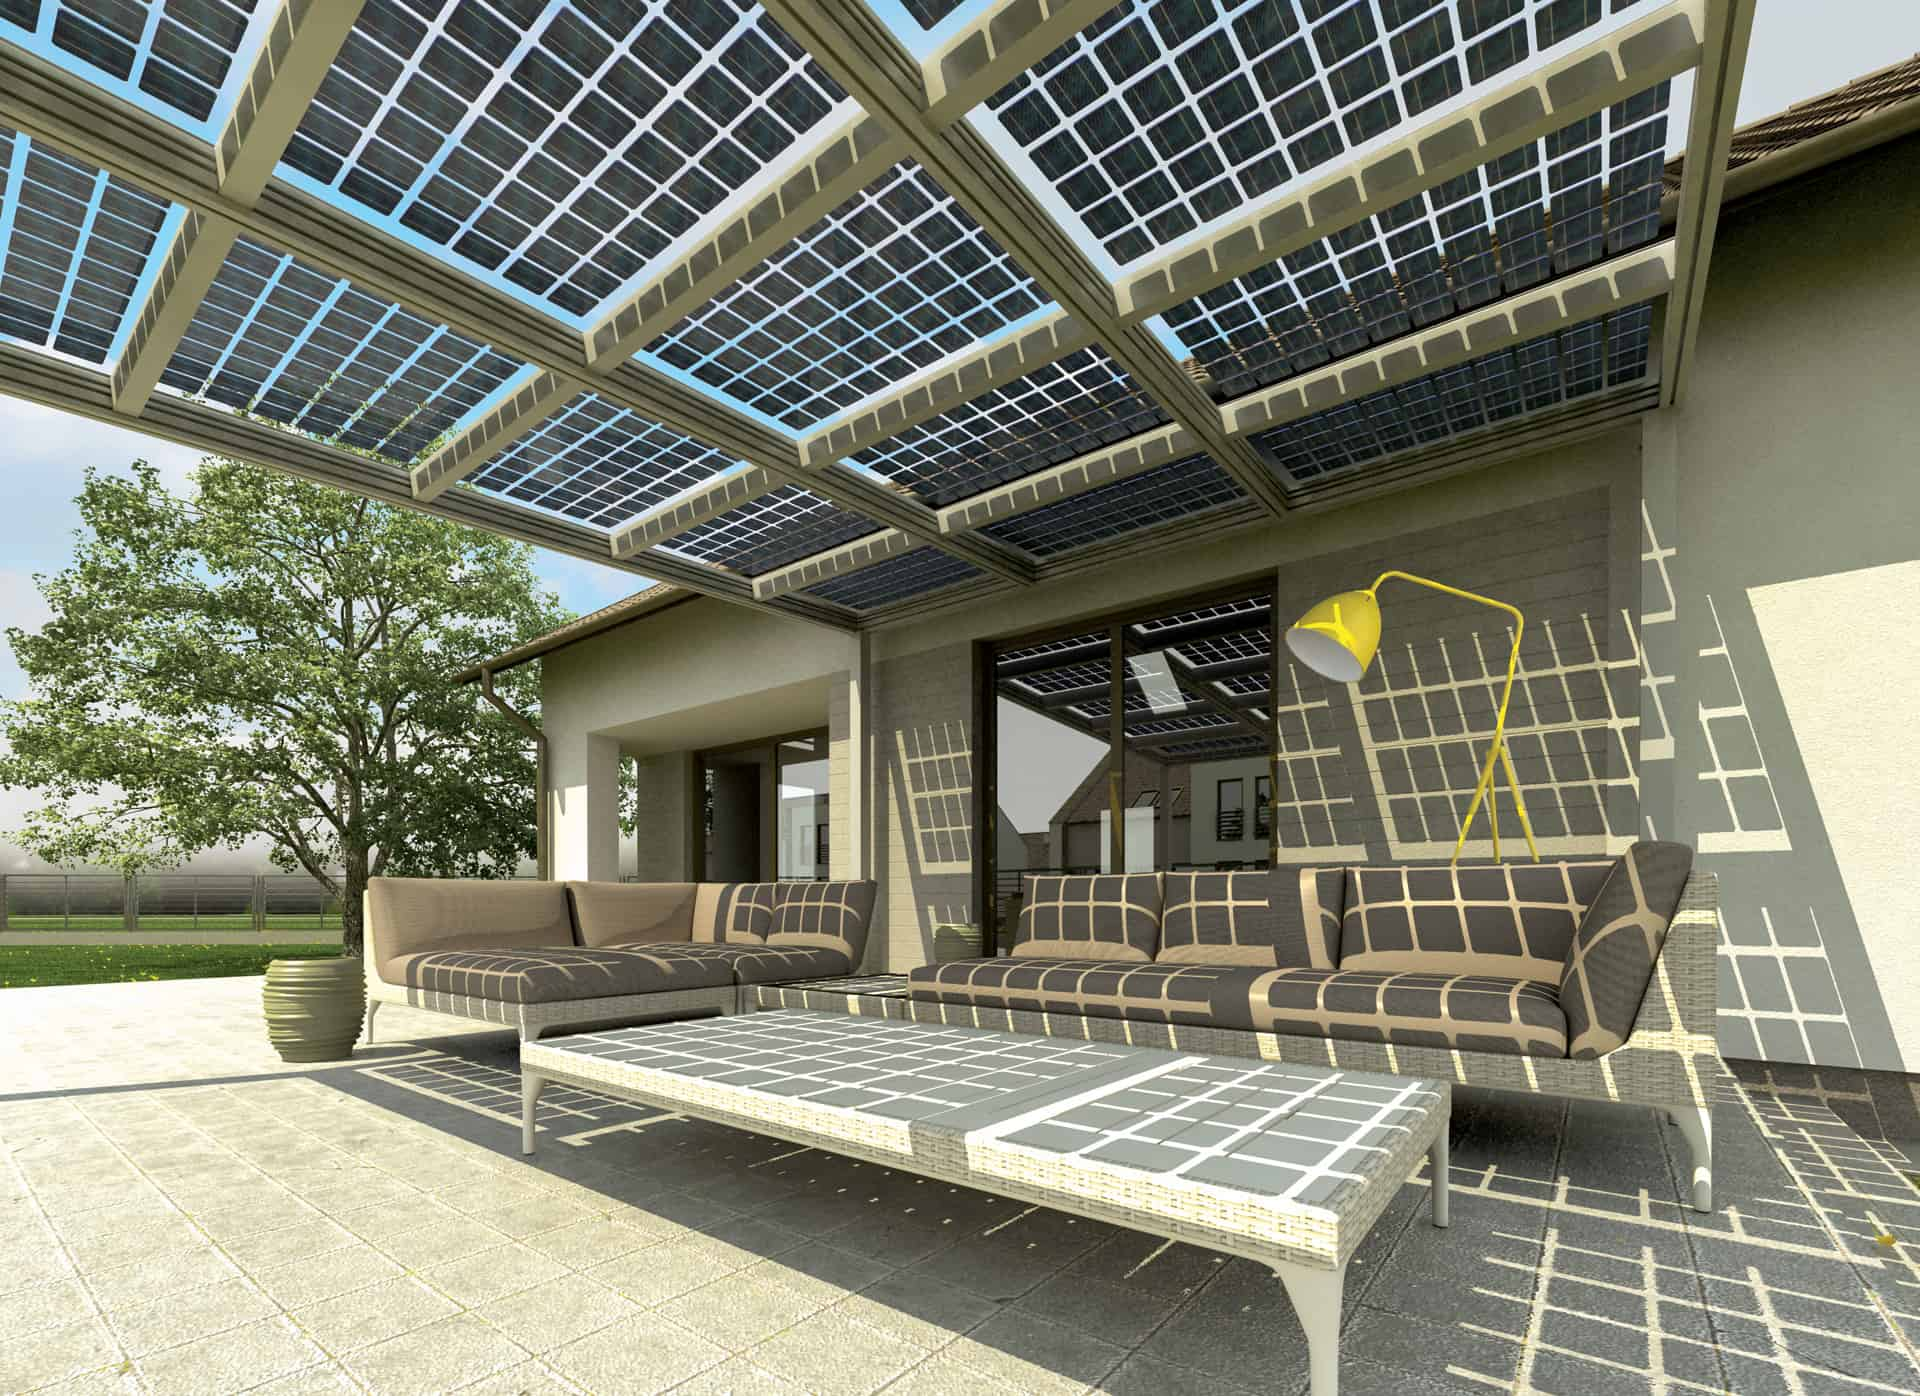 Concept / PV patio canopy